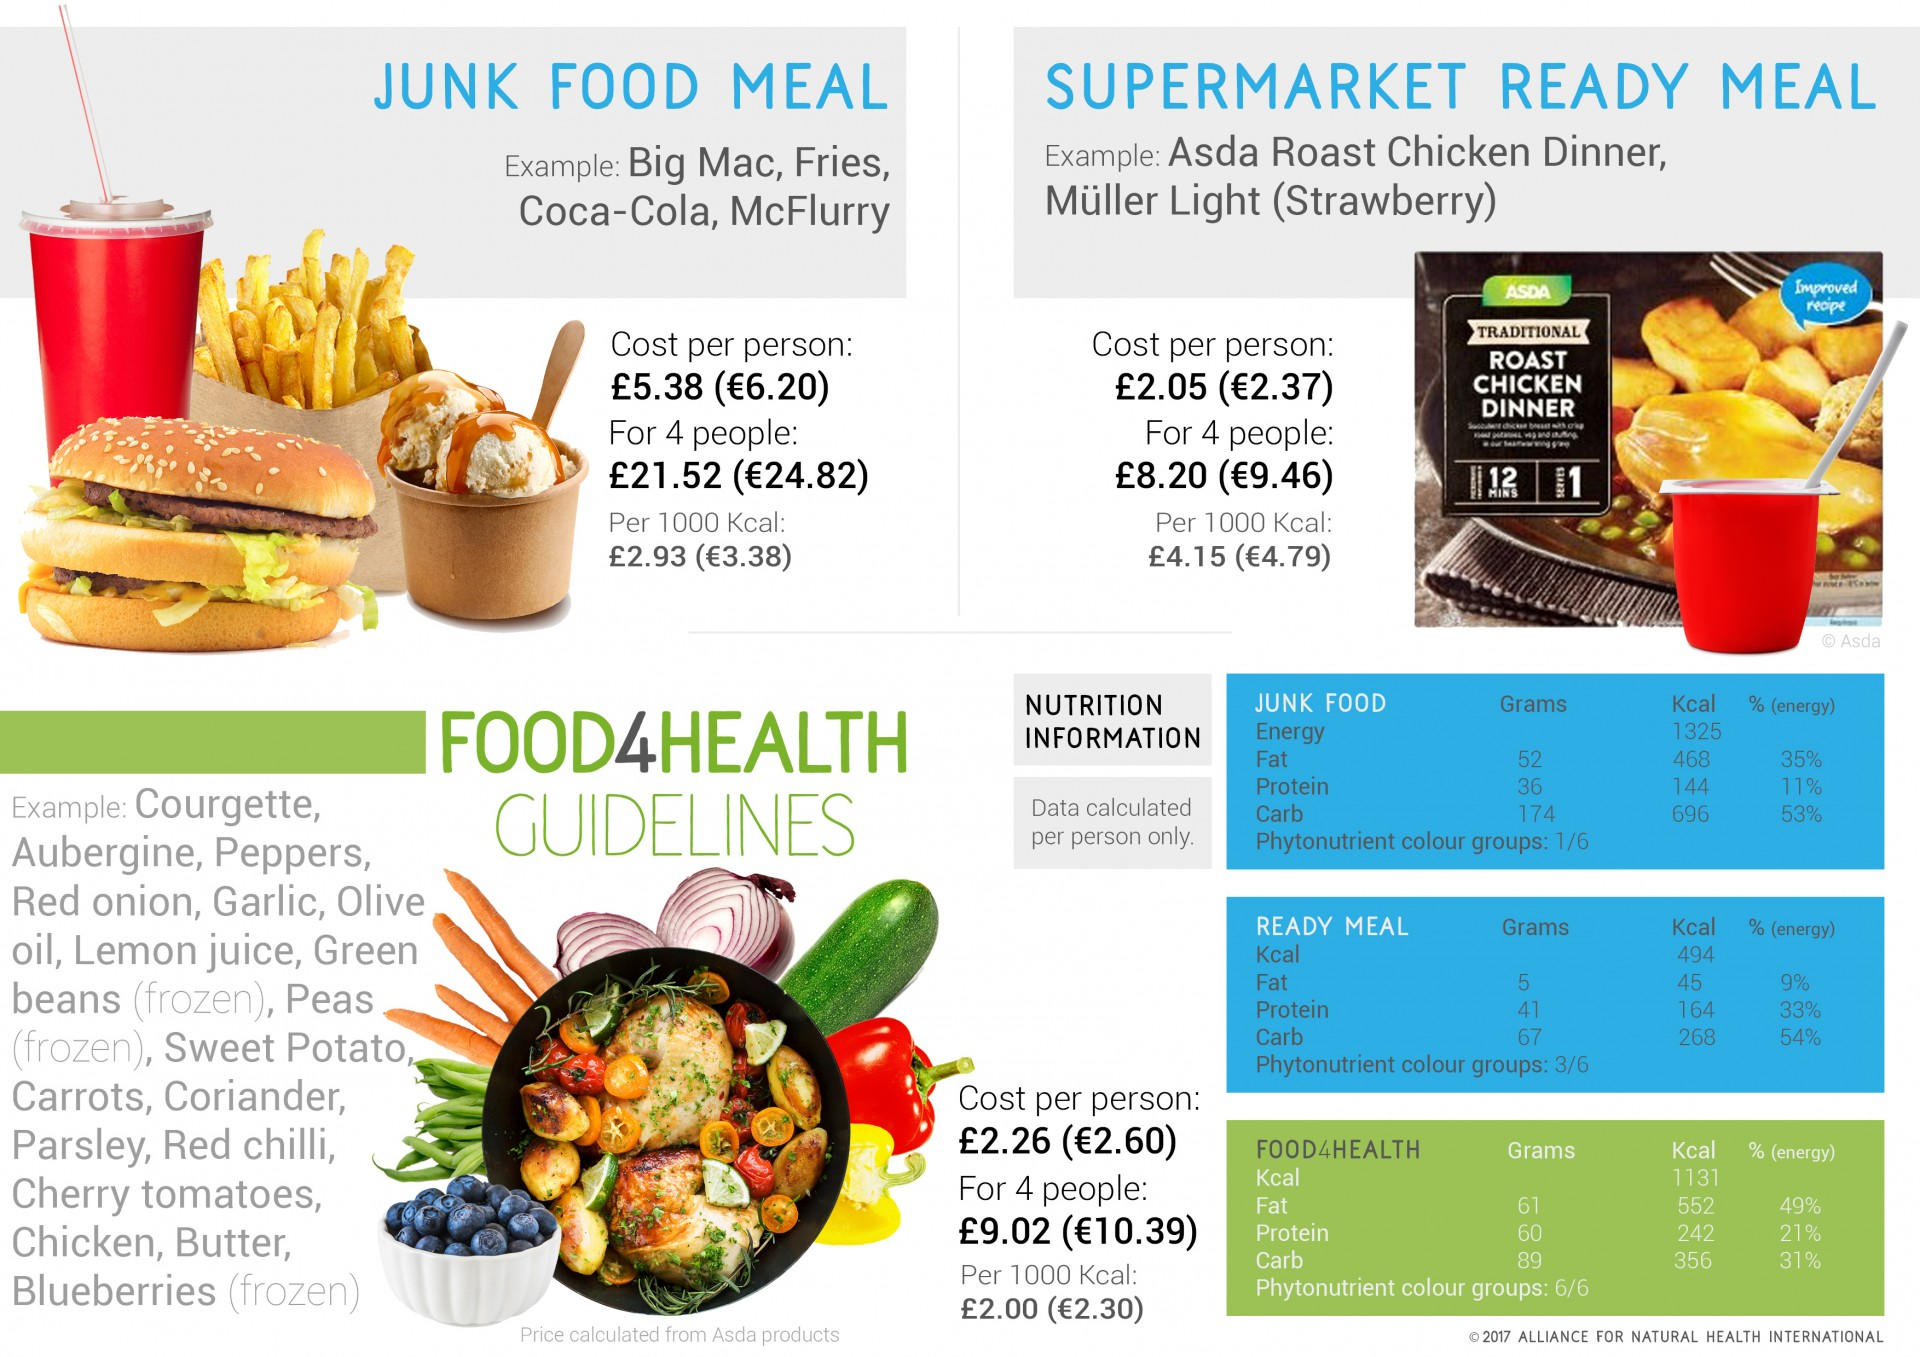 Is Healthy Eating Really More Expensive Than Junk Food